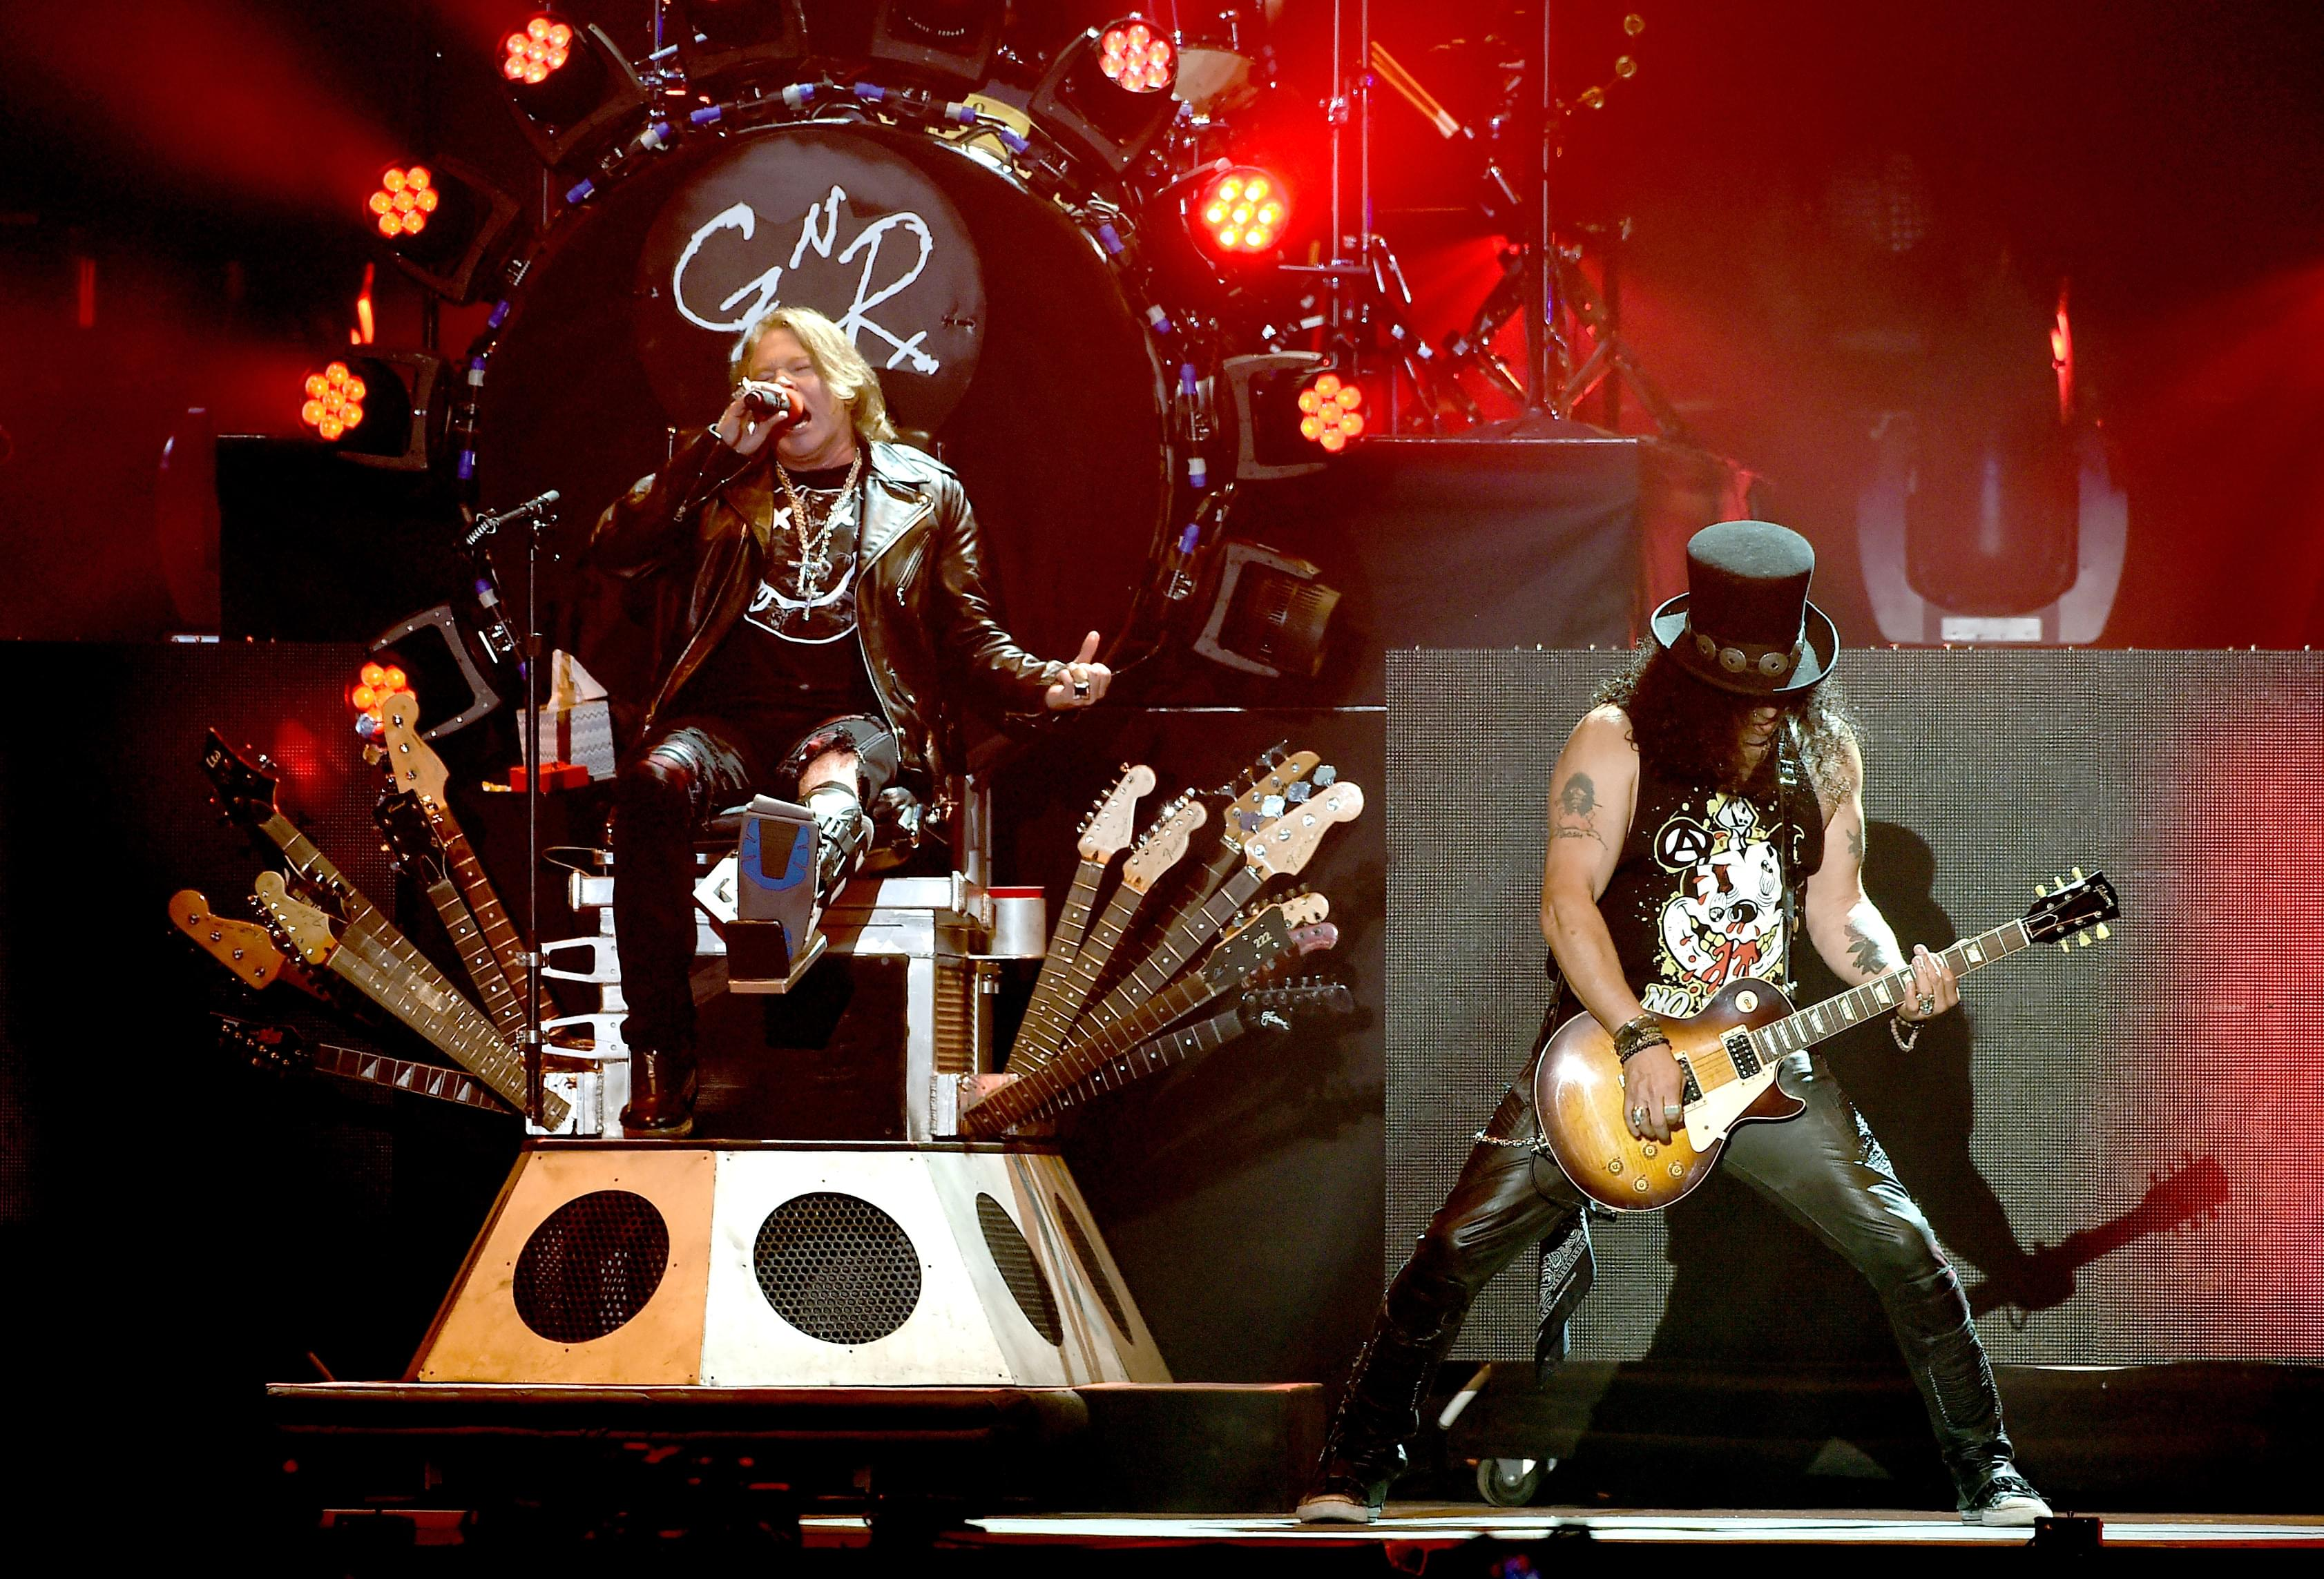 Guns N' Roses tour now third highest-grossing of all time